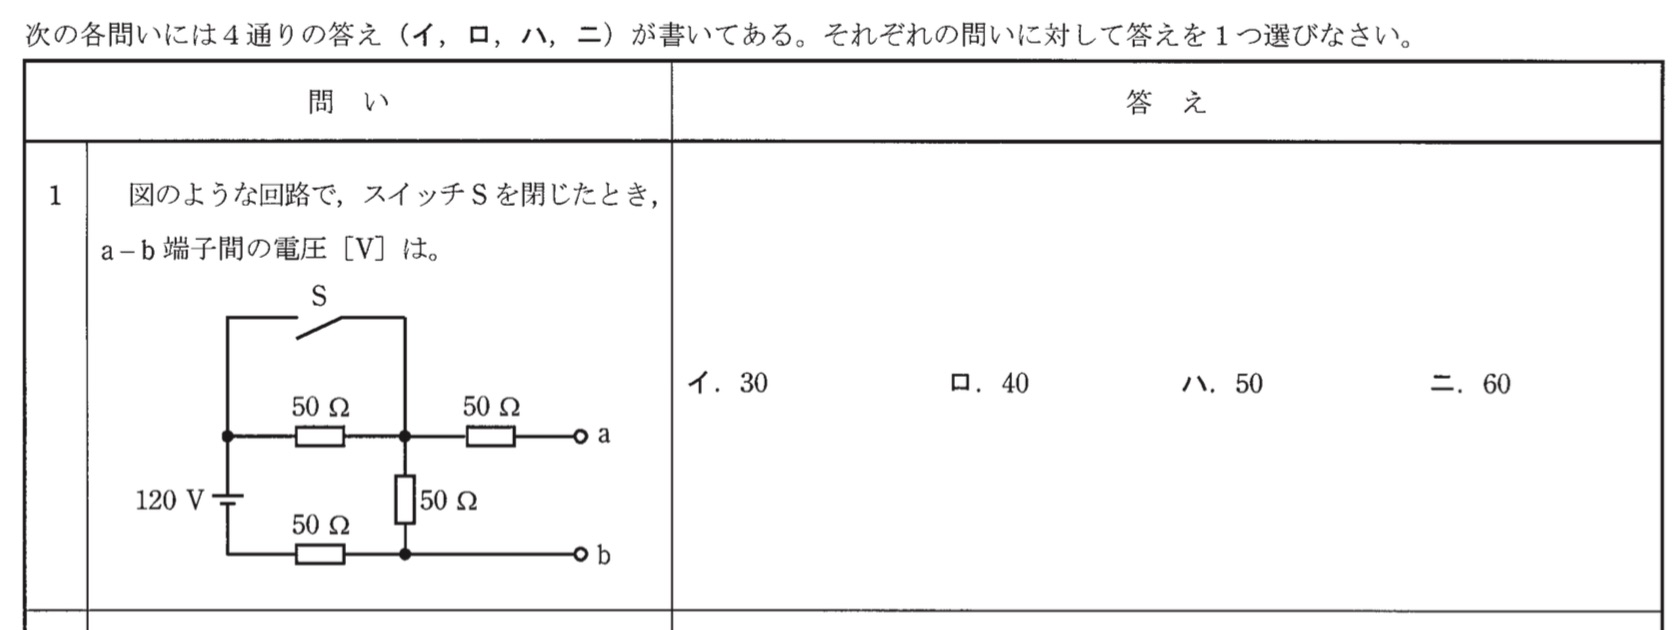 www_shiken_or_jp_answer_pdf_187_file_nm01_2015_K_shimokihikki_pdf.jpg